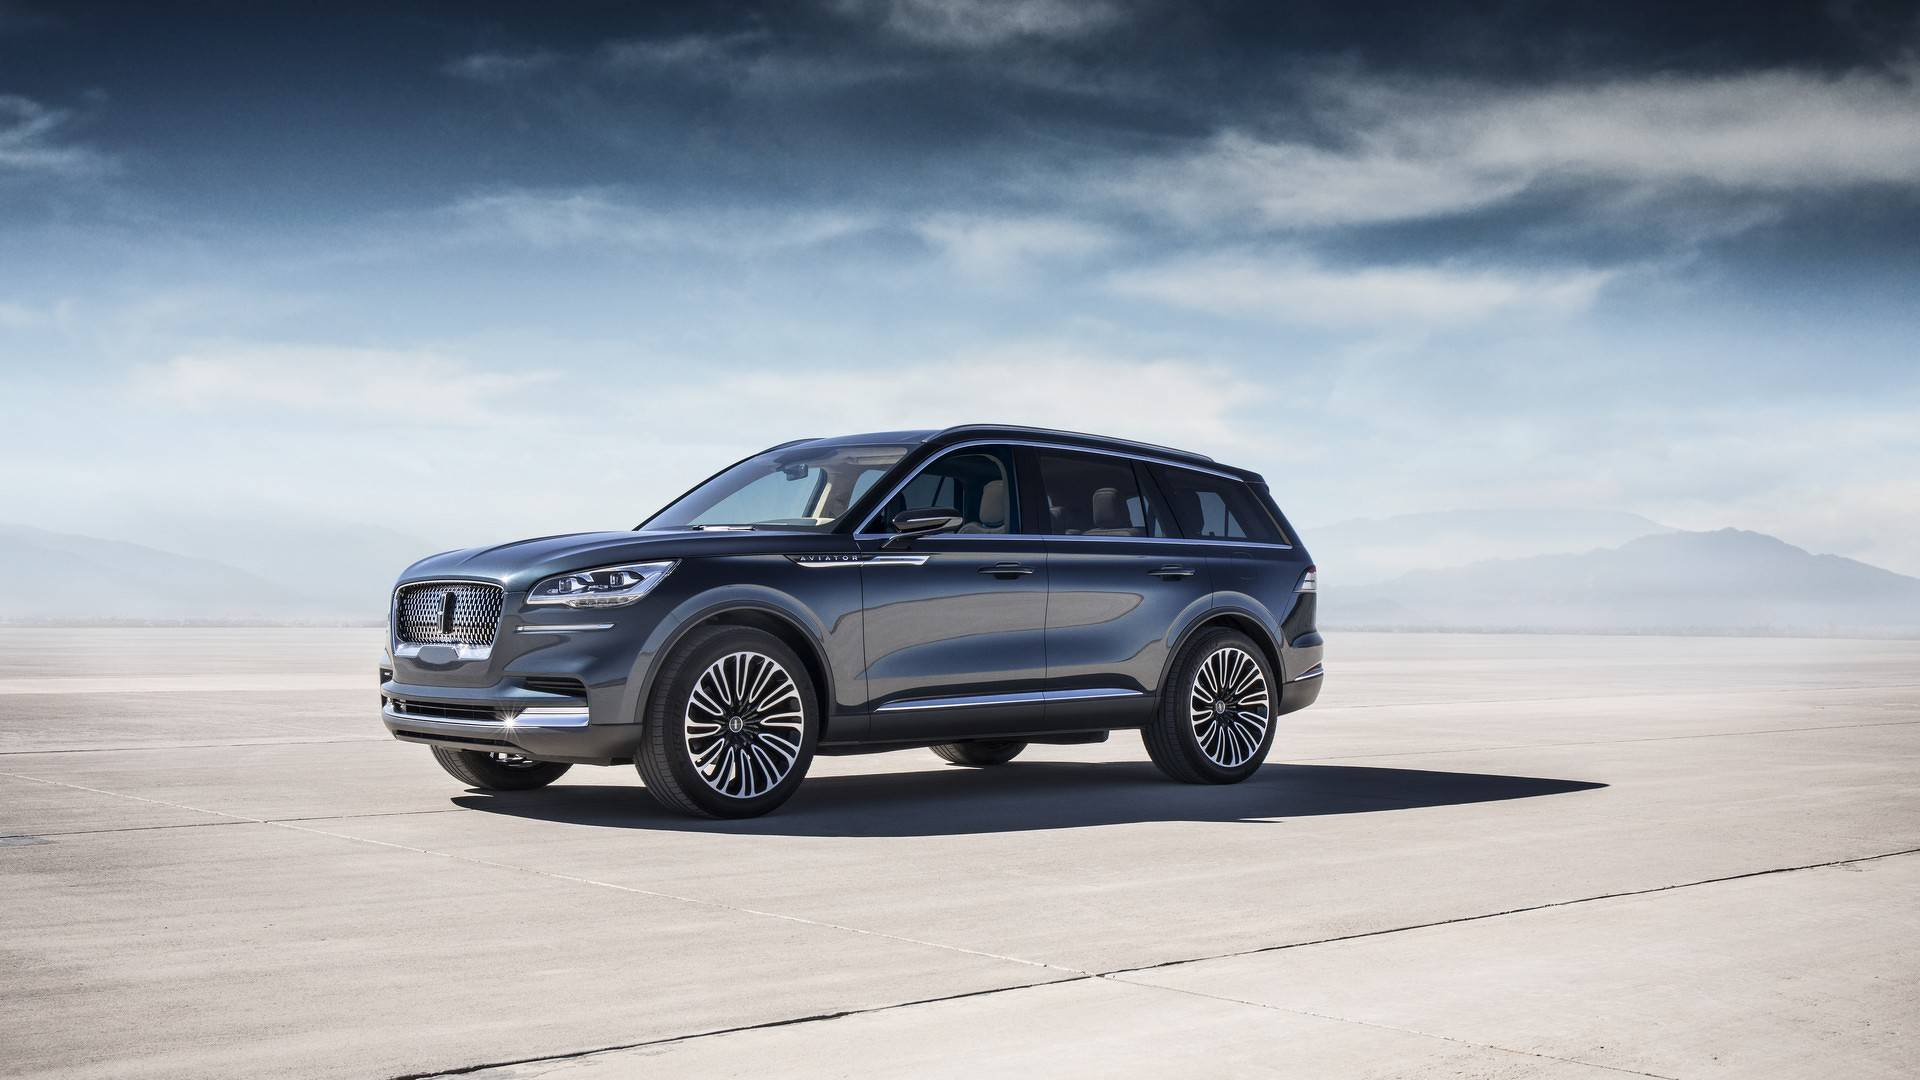 14 New 2020 Lincoln Mkx At Beijing Motor Show Release Date and Concept